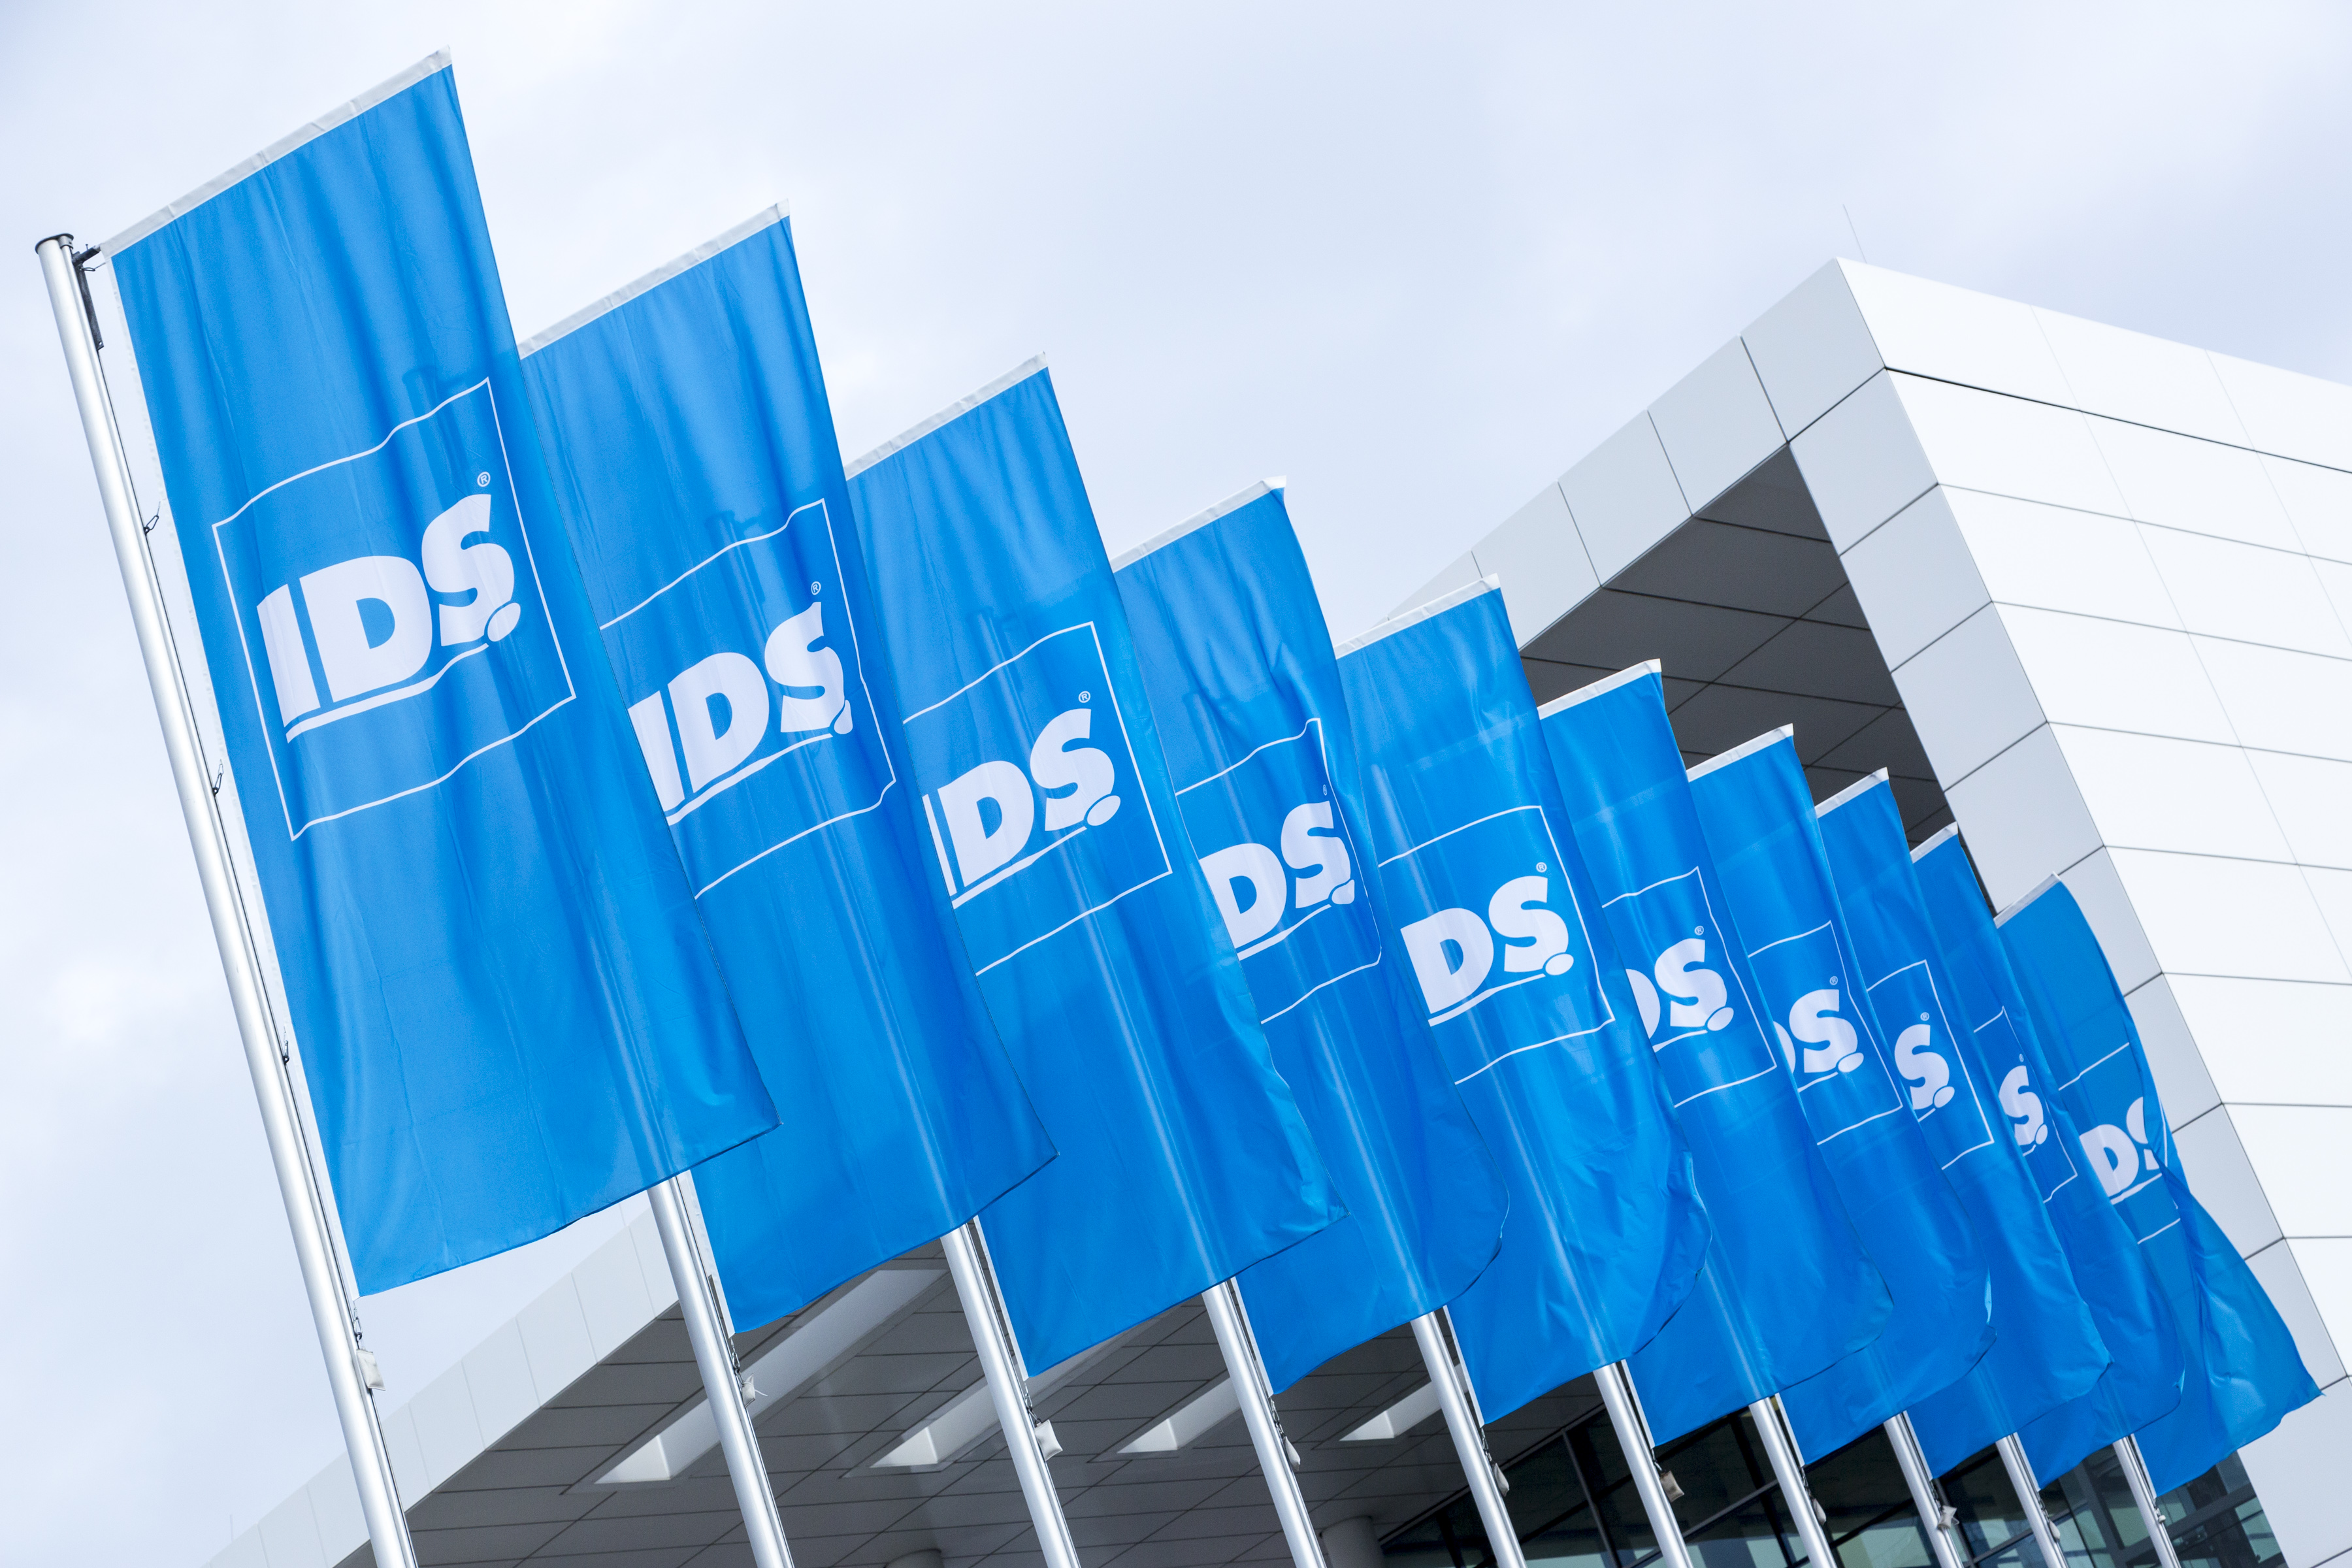 38. Internationale Dental-Schau - IDS